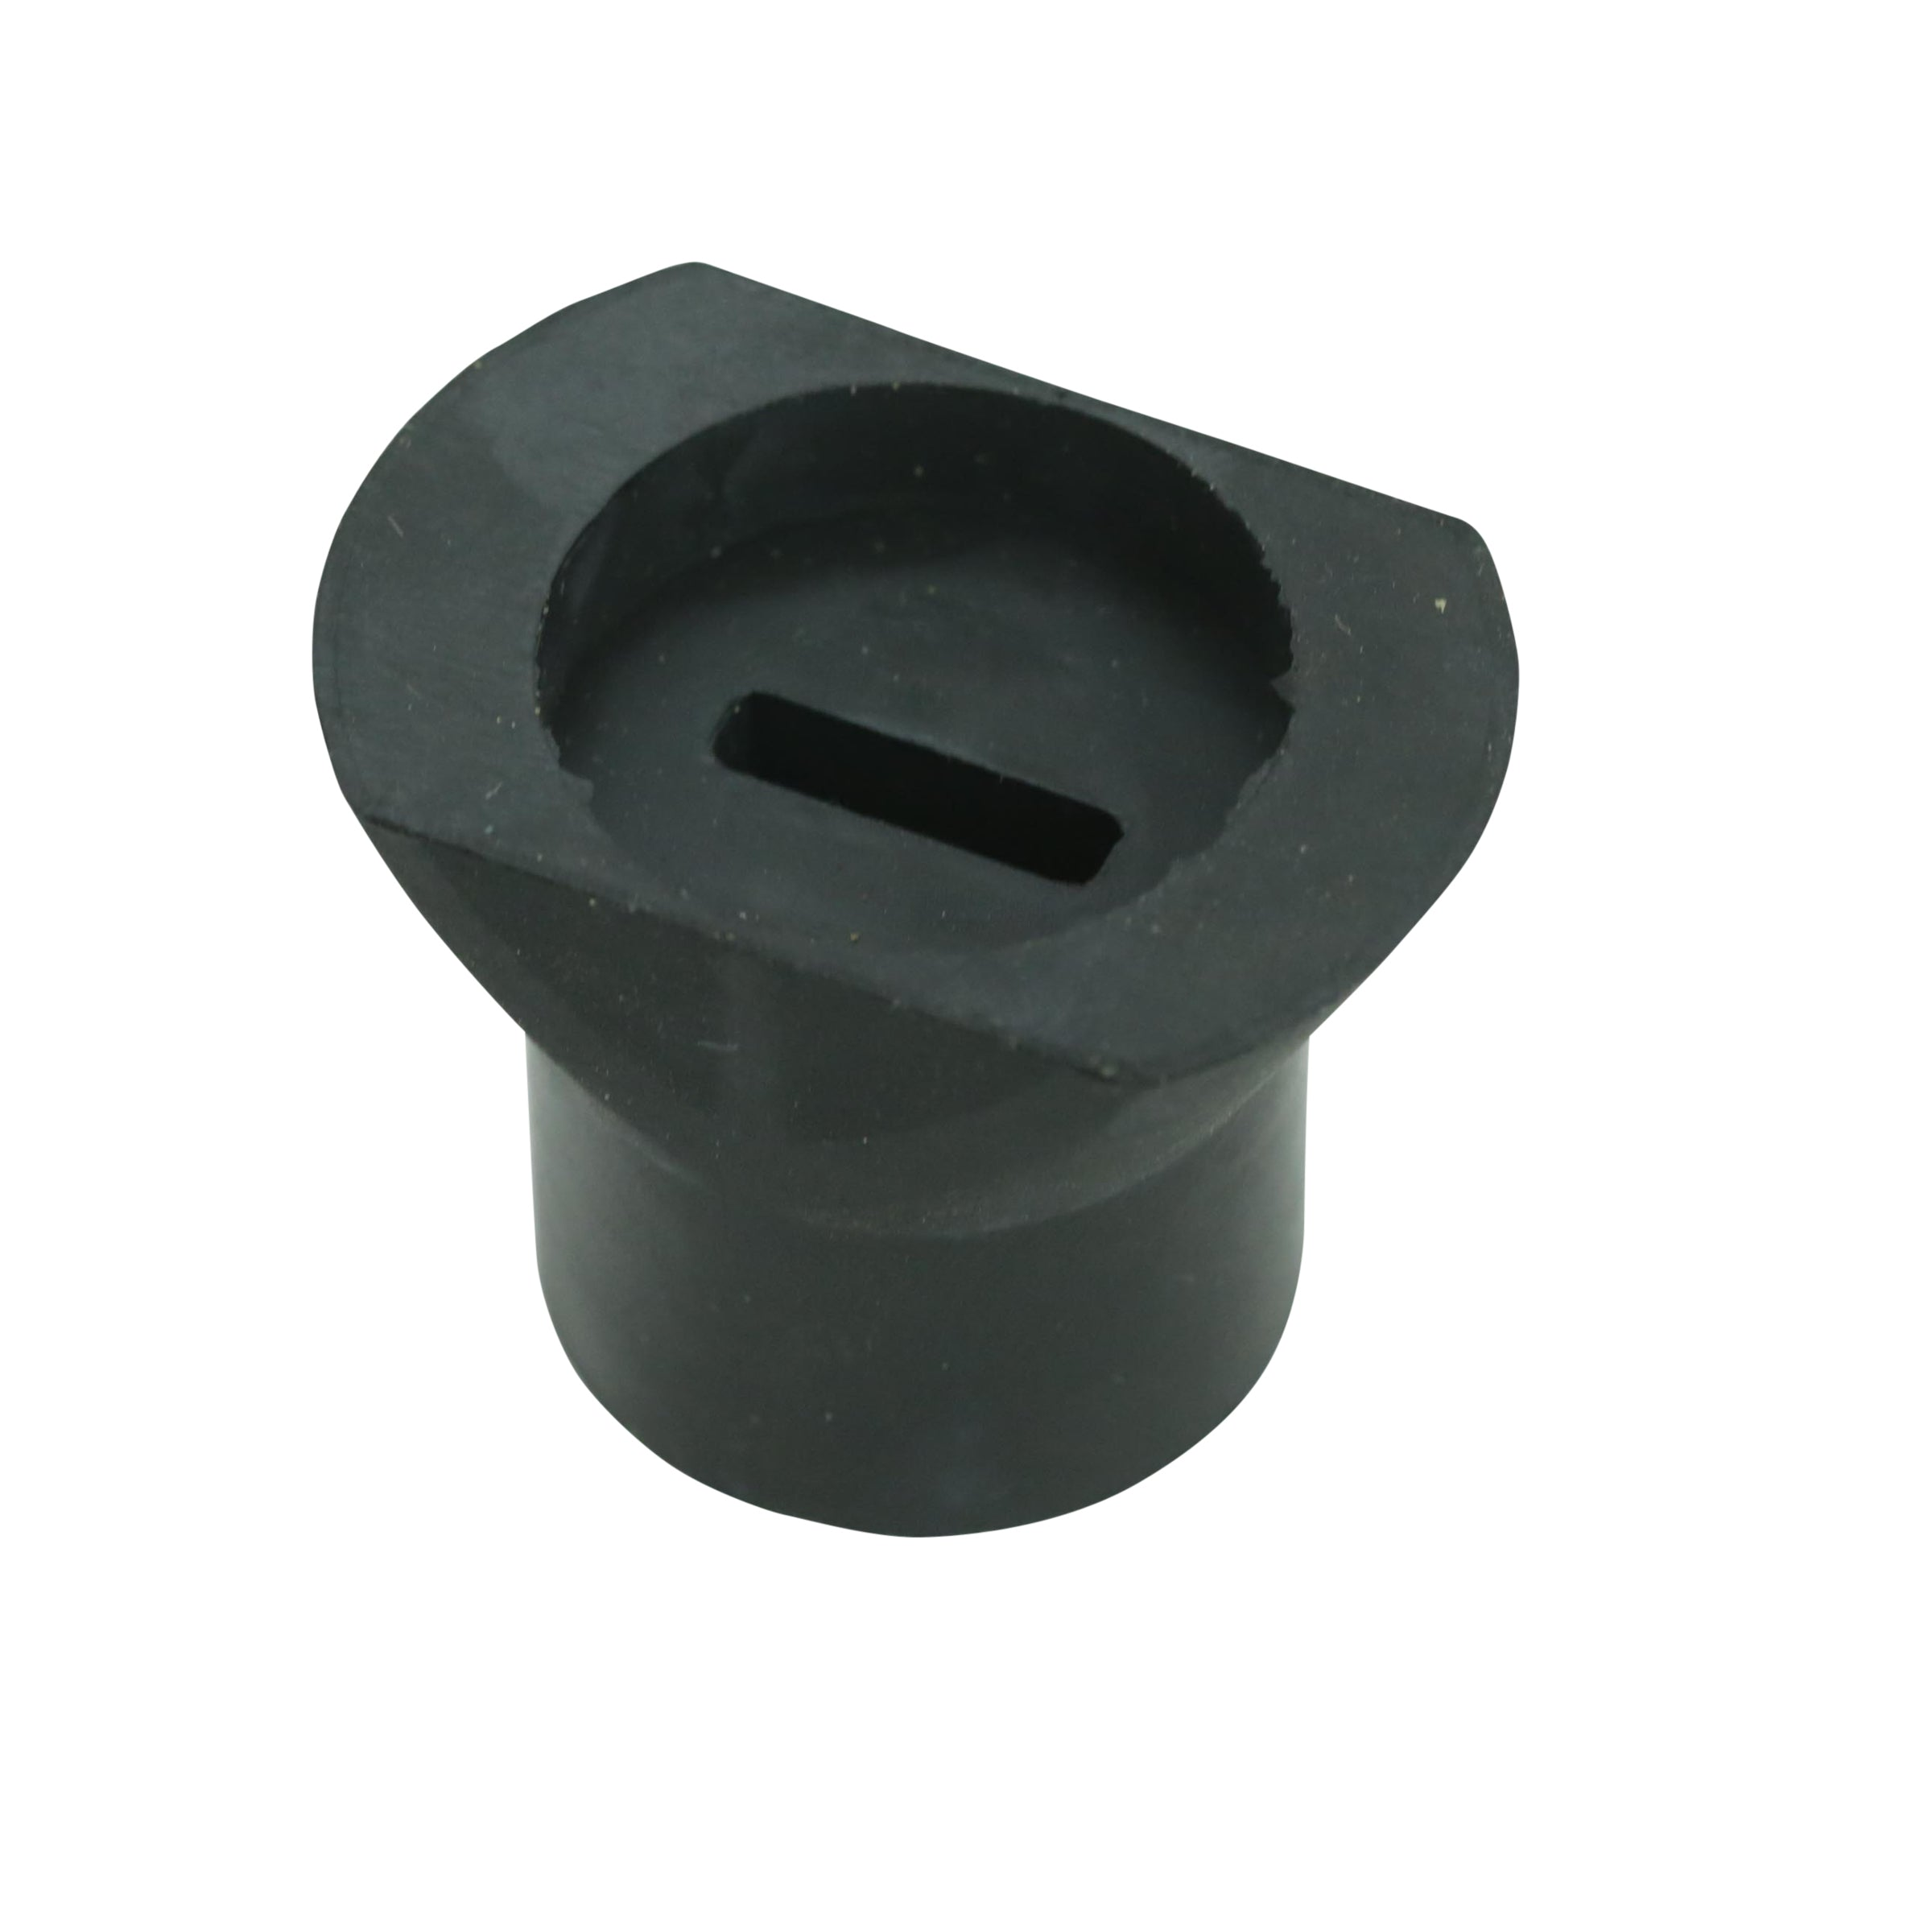 Door Check Arm Rubber Bumper • 1932-34